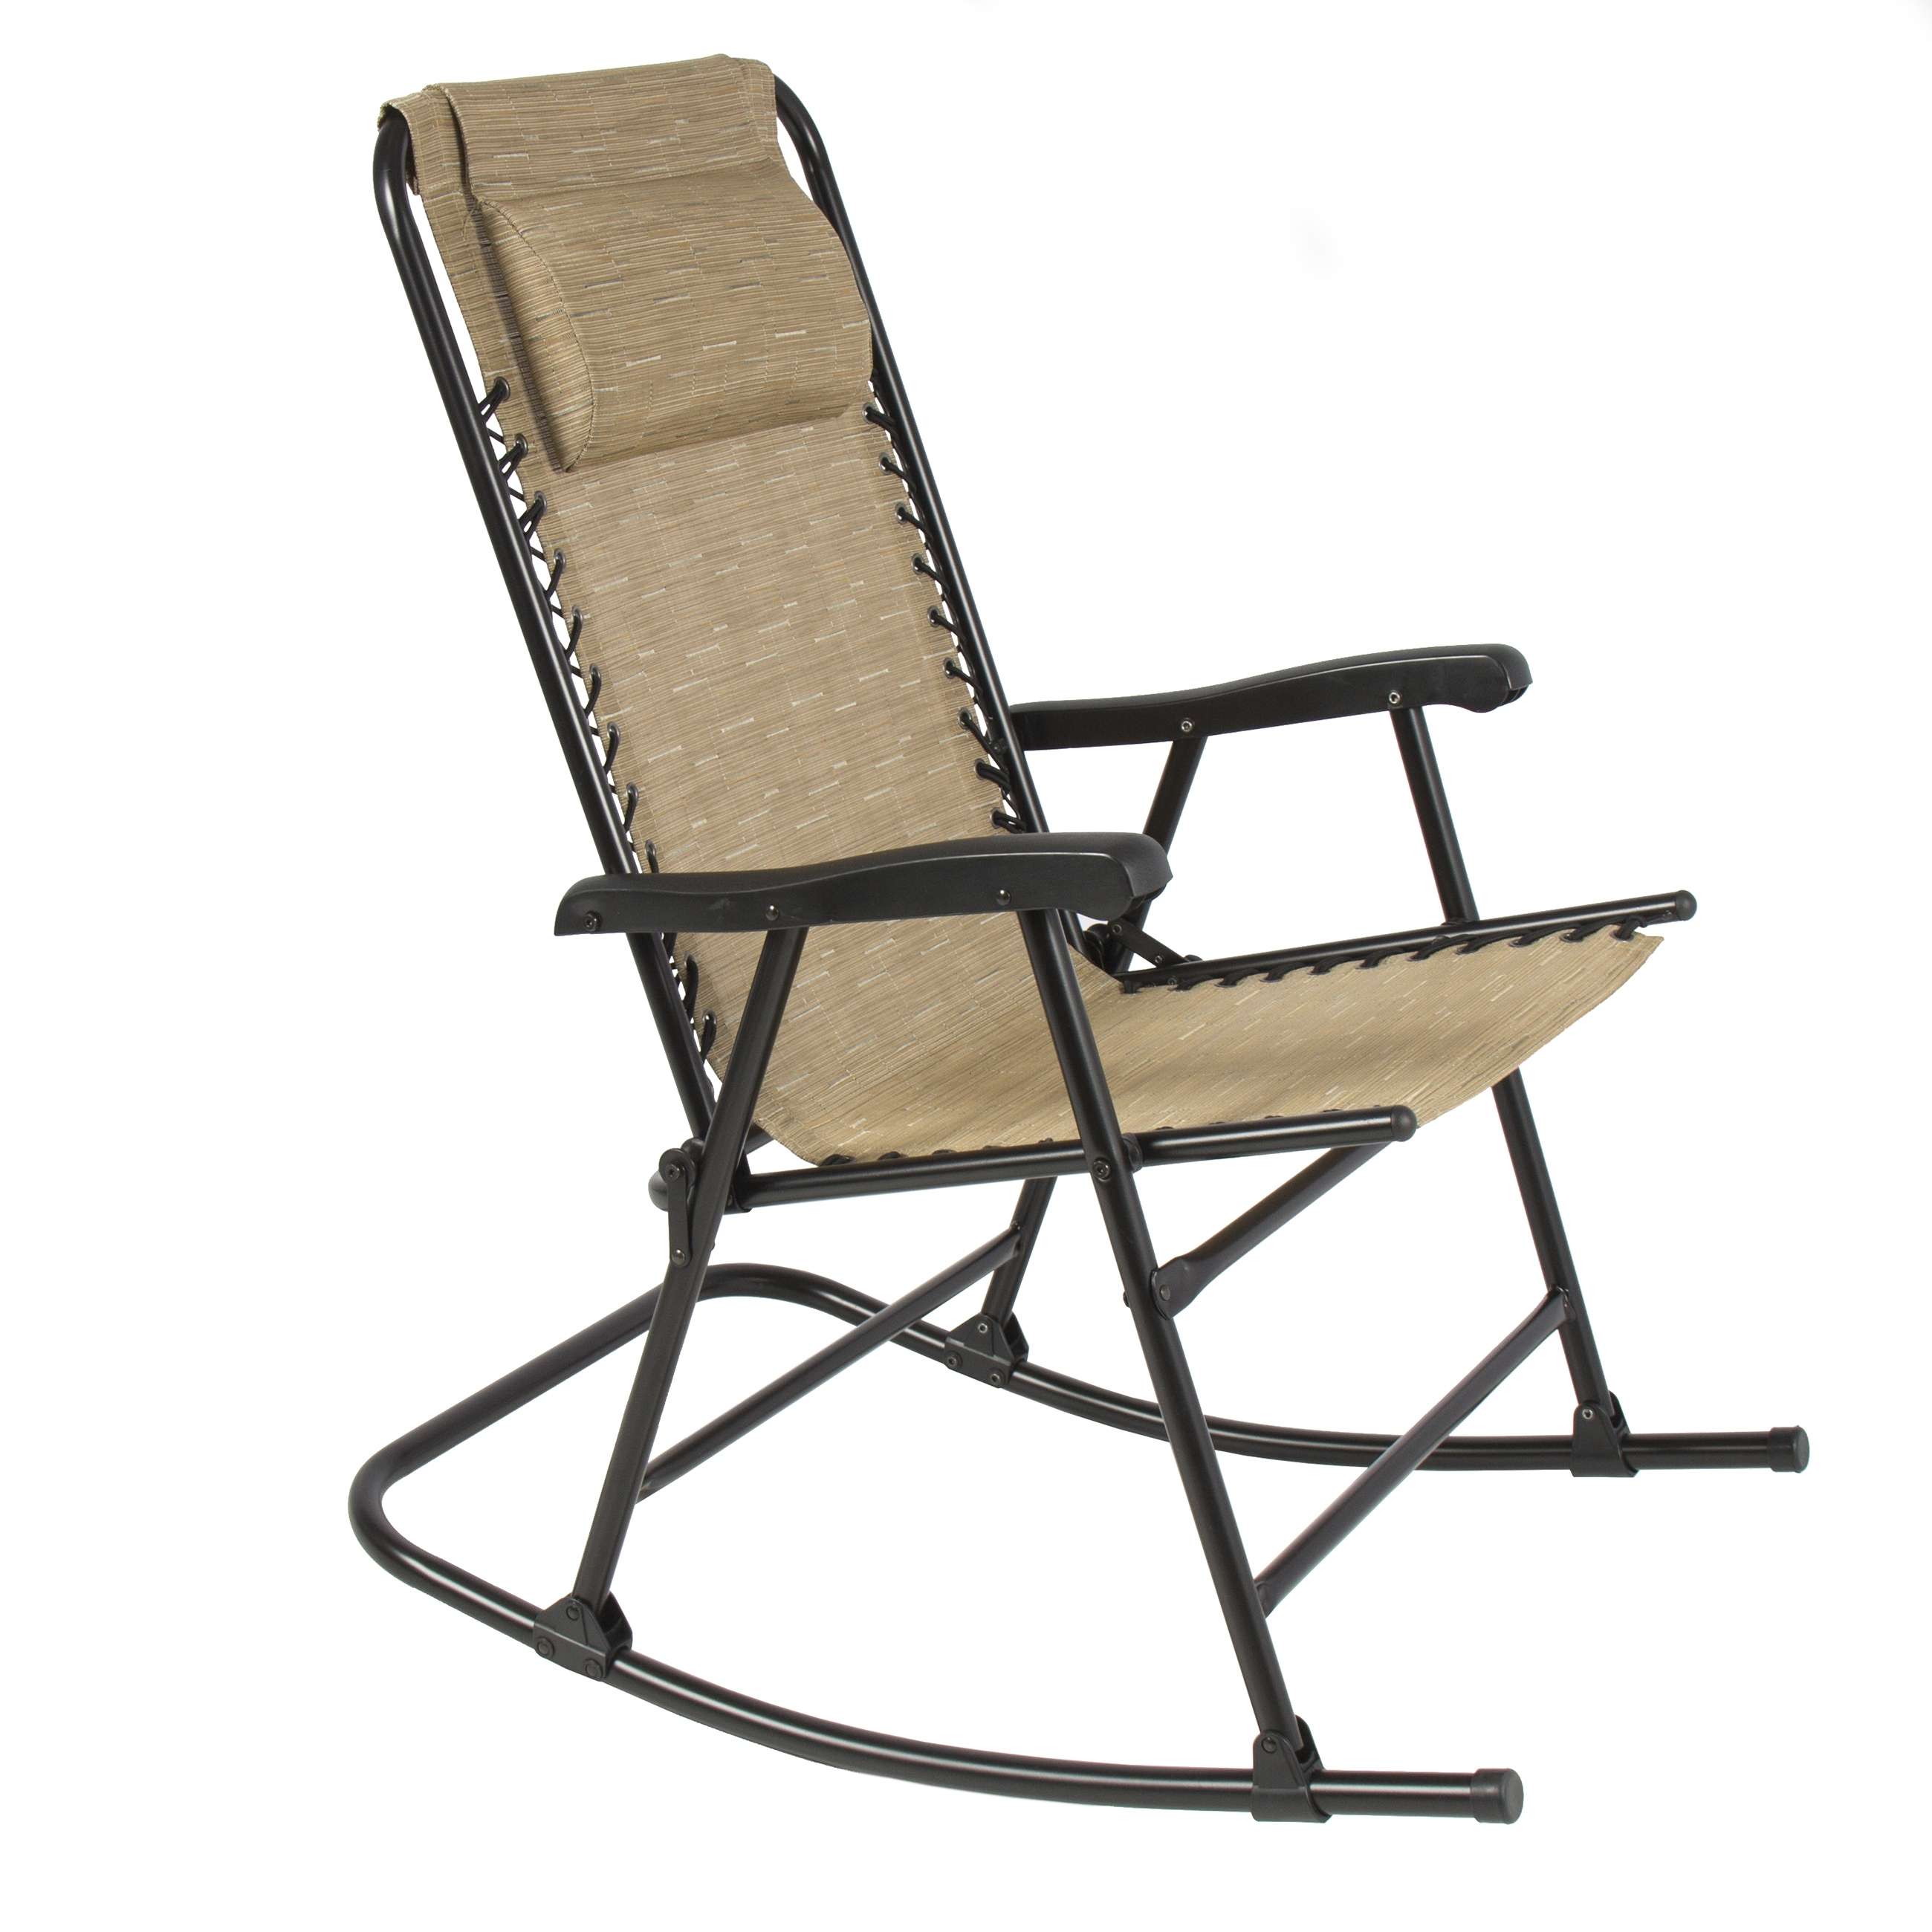 Outdoor Patio Metal Rocking Chairs In Well Known Folding Rocking Chair Foldable Rocker Outdoor Patio Furniture Beige (View 10 of 15)